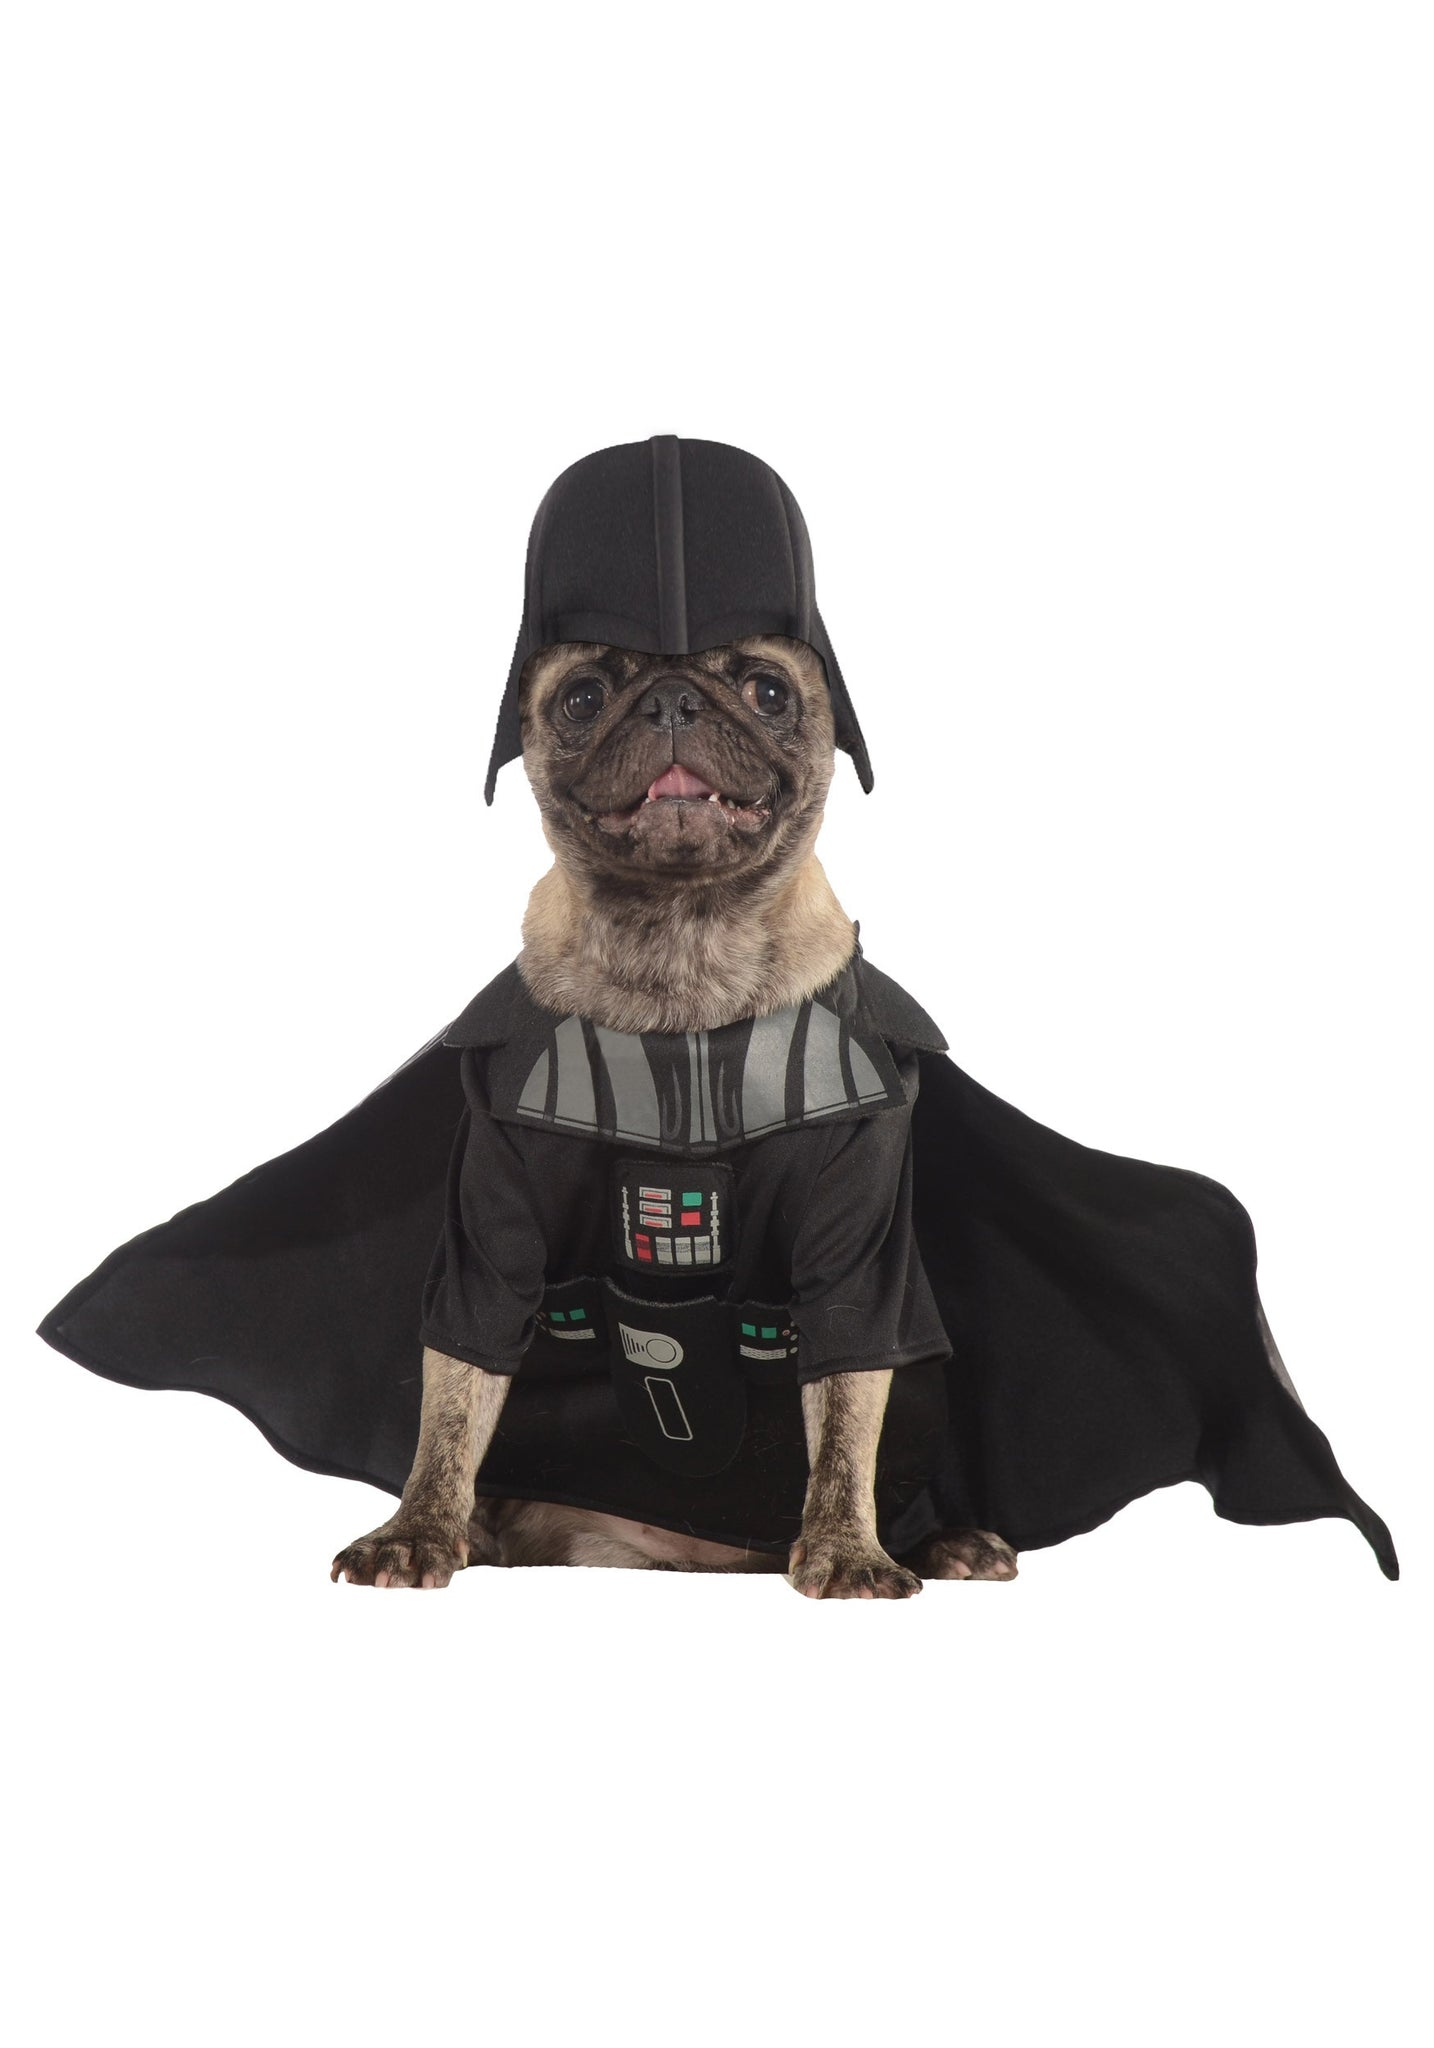 DARTH VADER DELUXE PET COSTUME  - SIZE S